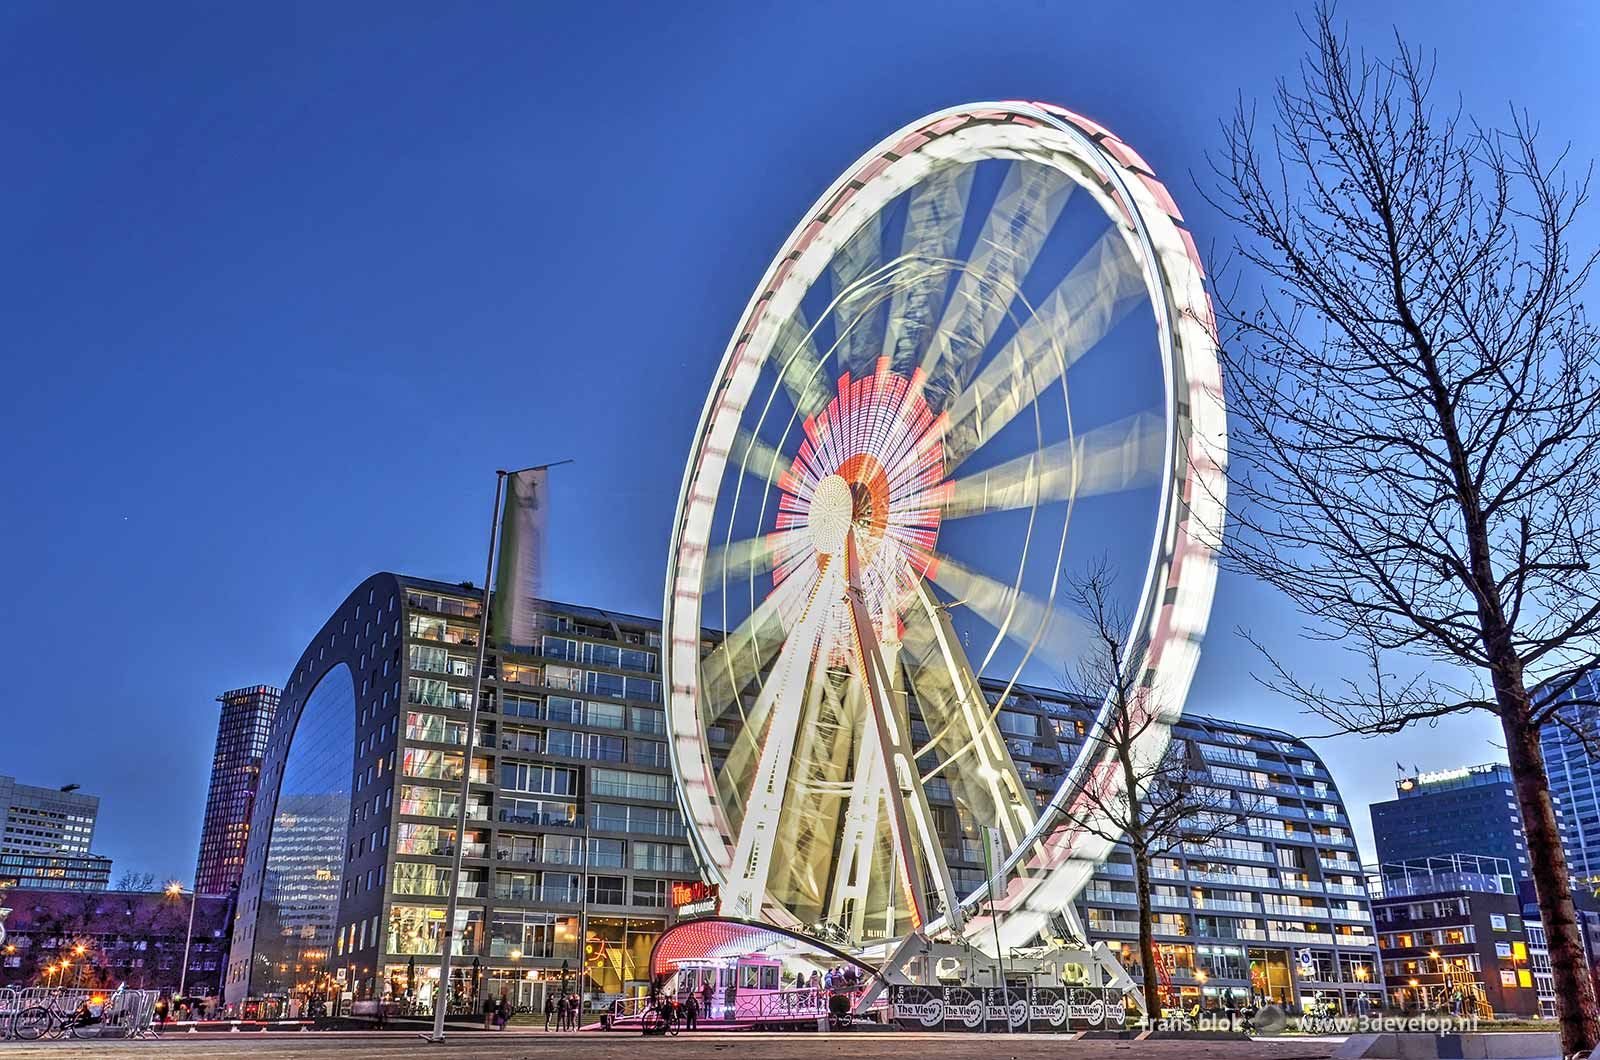 Ferriw Wheel The View, a temporary attraction on Binnenrotte square in downtwon Rotterdam with the famous Markthal in the background